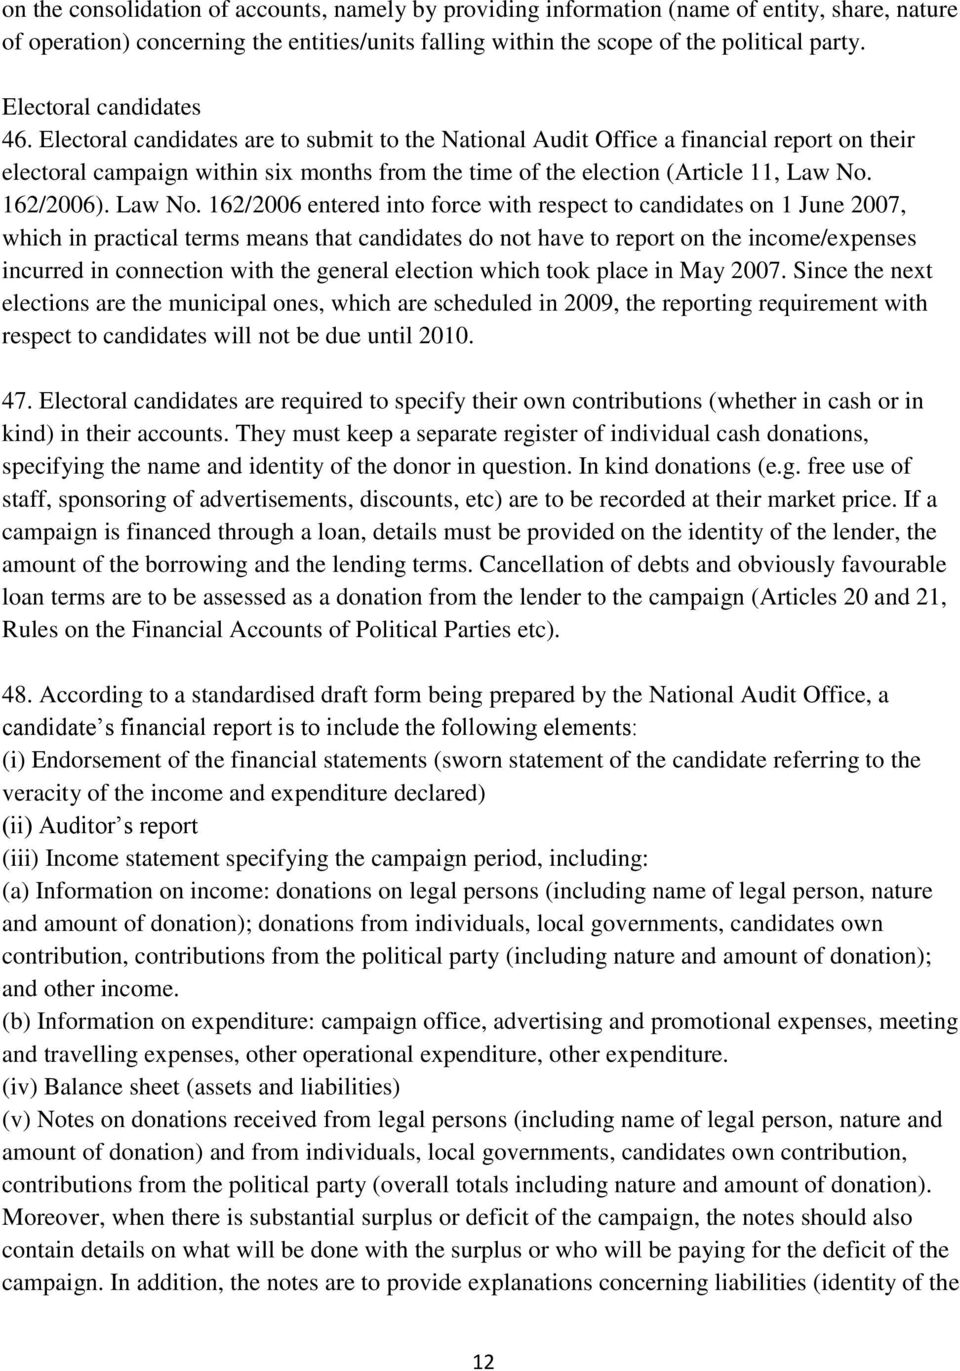 Electoral candidates are to submit to the National Audit Office a financial report on their electoral campaign within six months from the time of the election (Article 11, Law No.